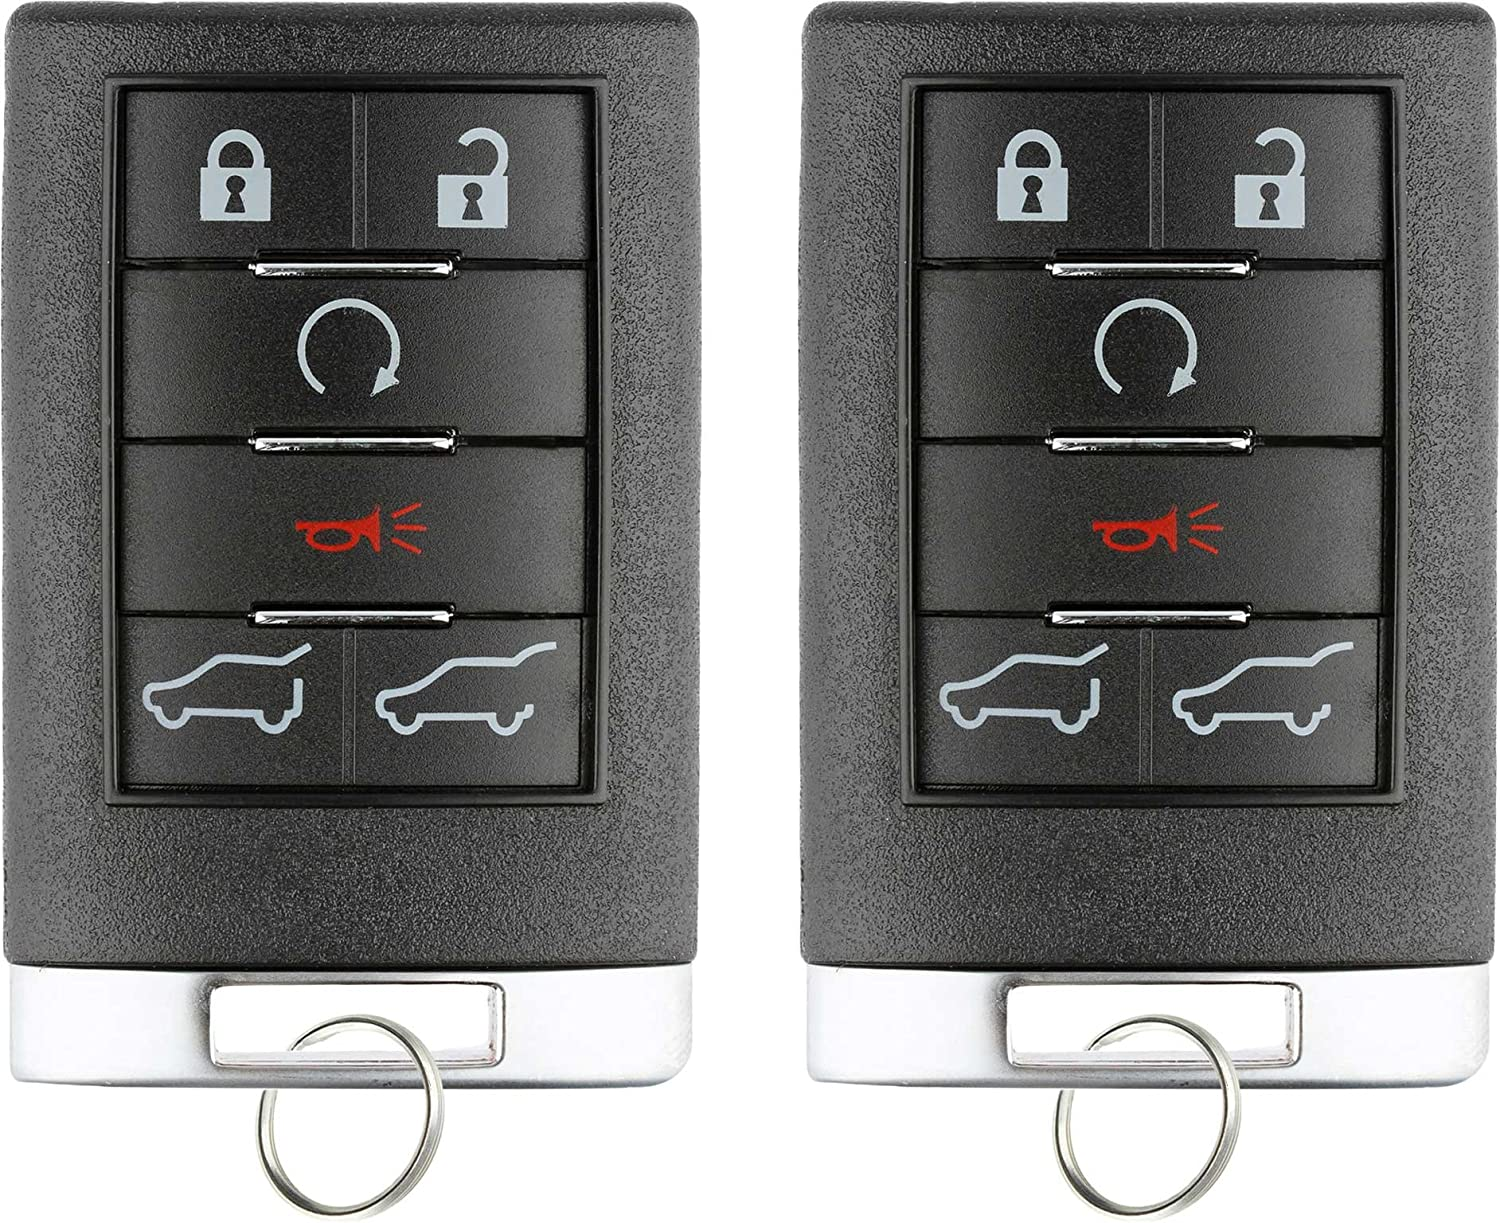 KeylessOption Keyless Entry Remote Control Car Key Fob Replacement for Cadillac Escalade EXT ESV Pack of 2